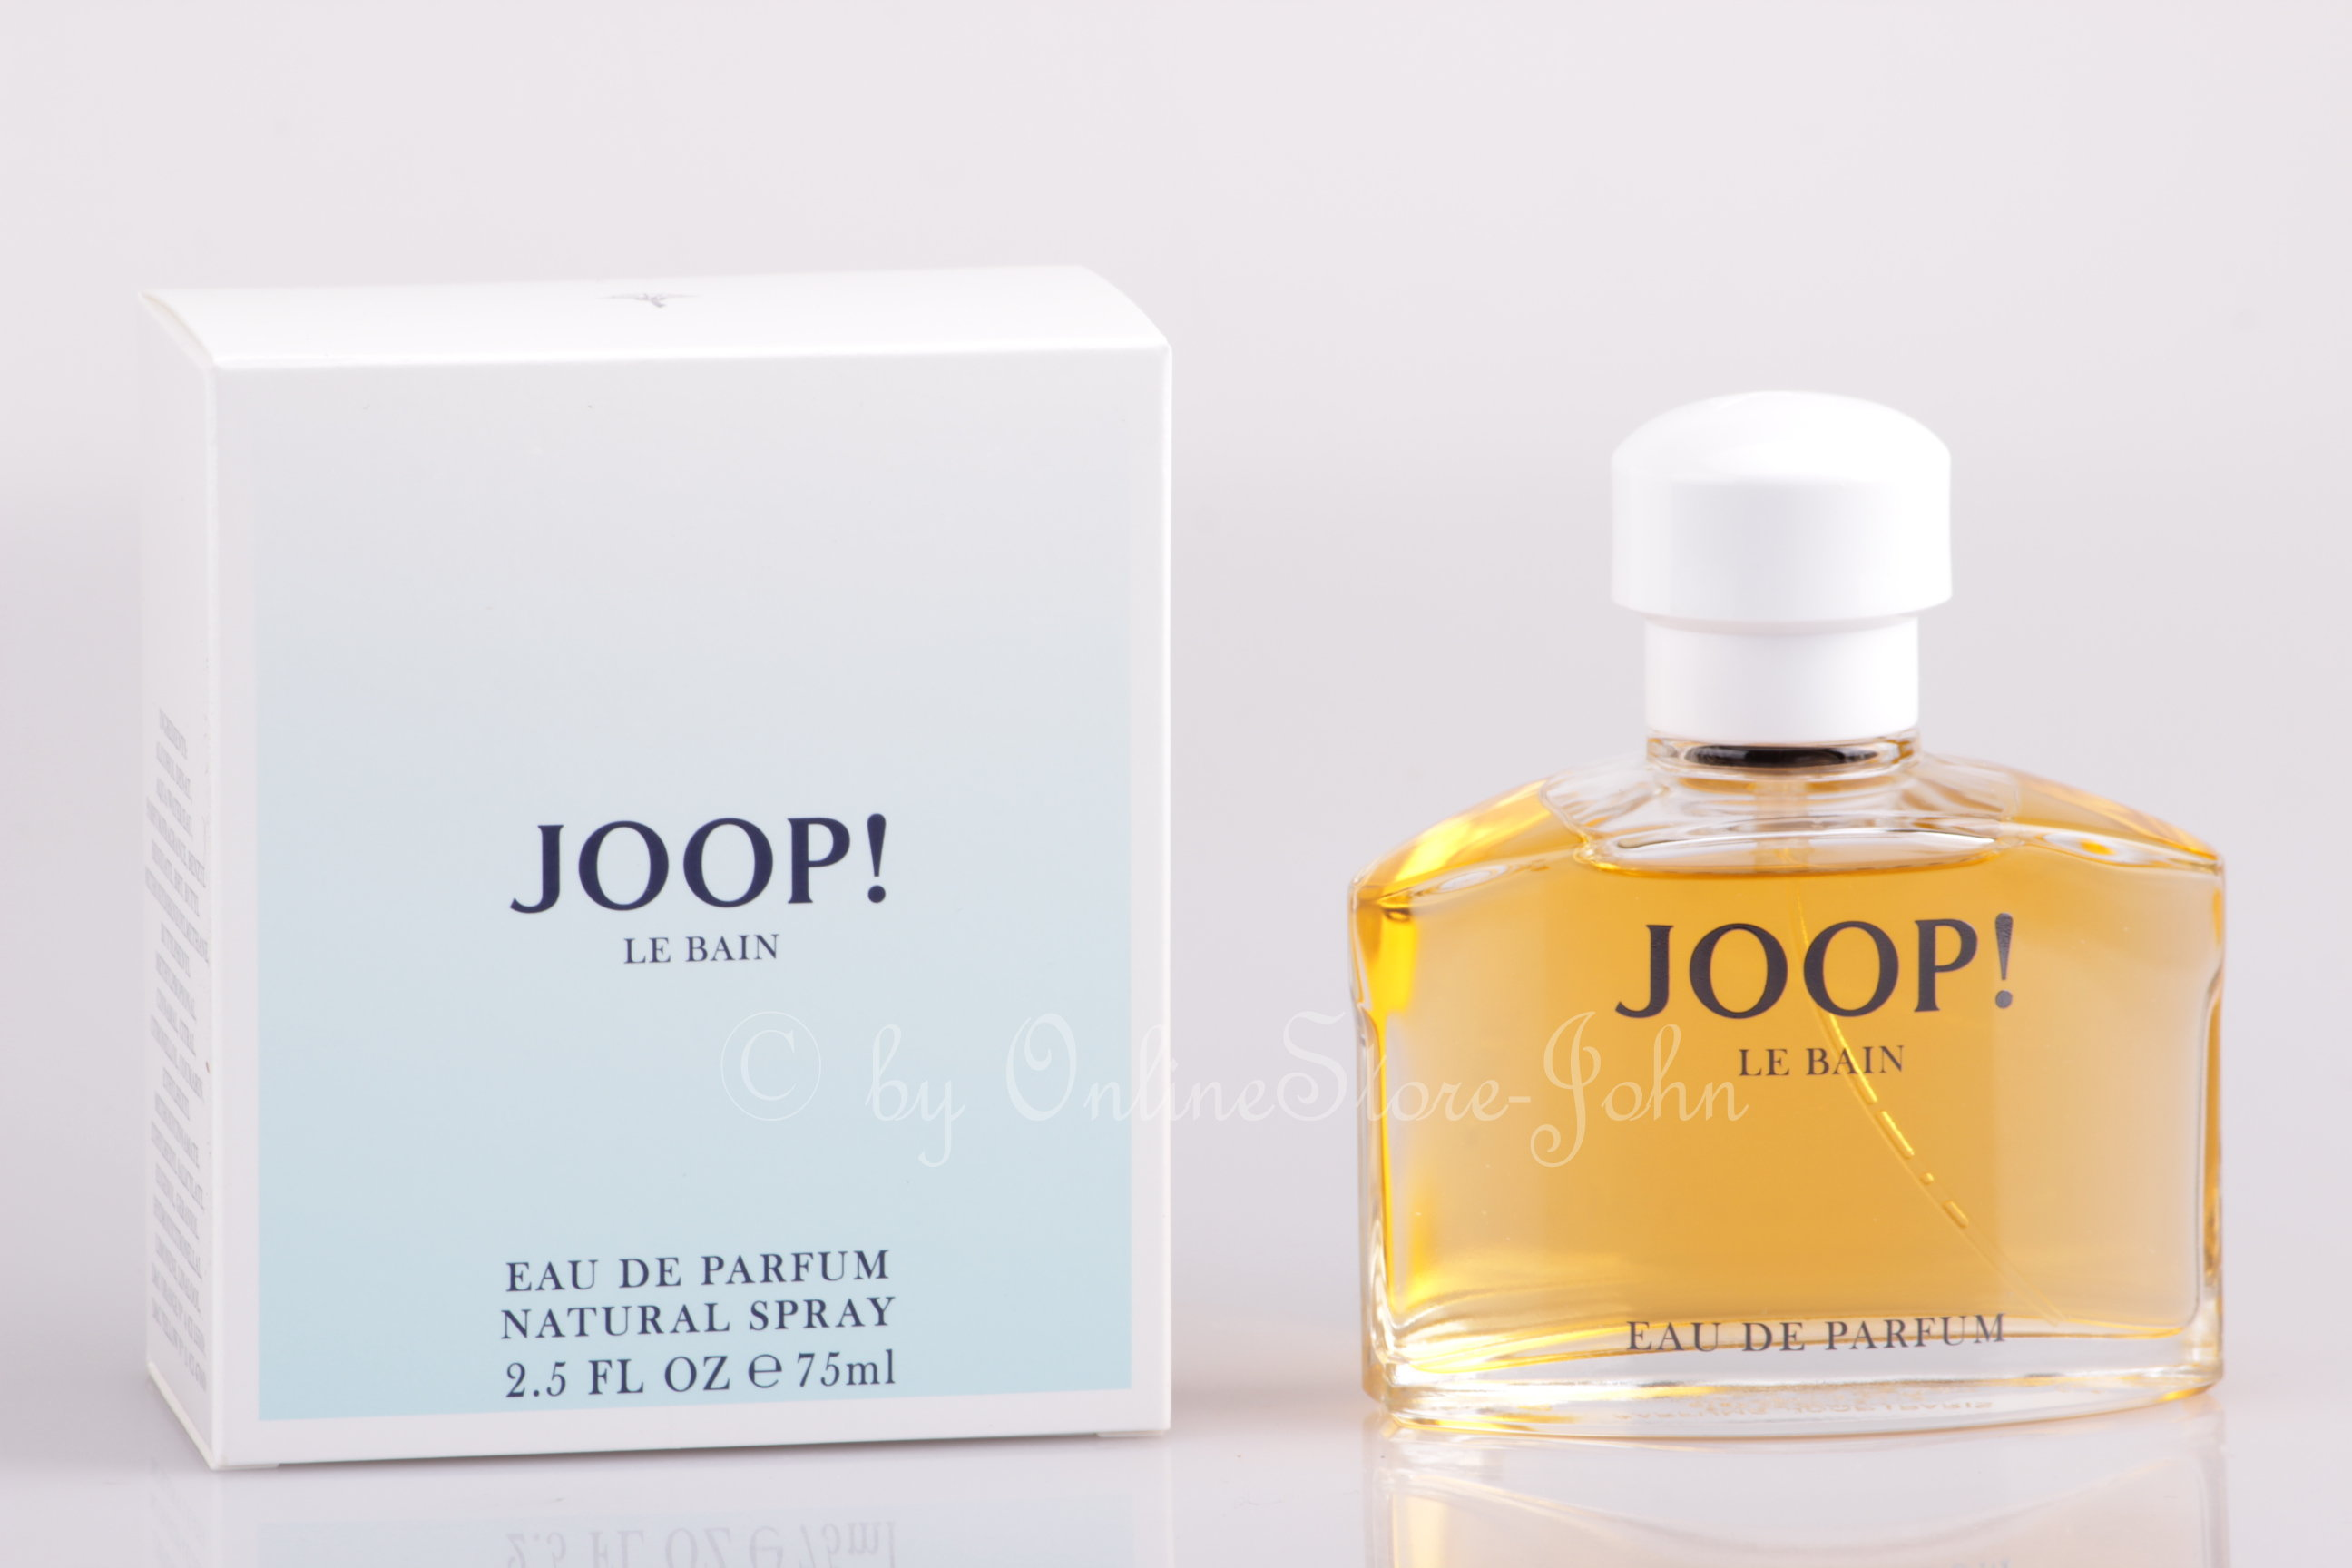 joop le bain 75ml edp eau de parfum. Black Bedroom Furniture Sets. Home Design Ideas